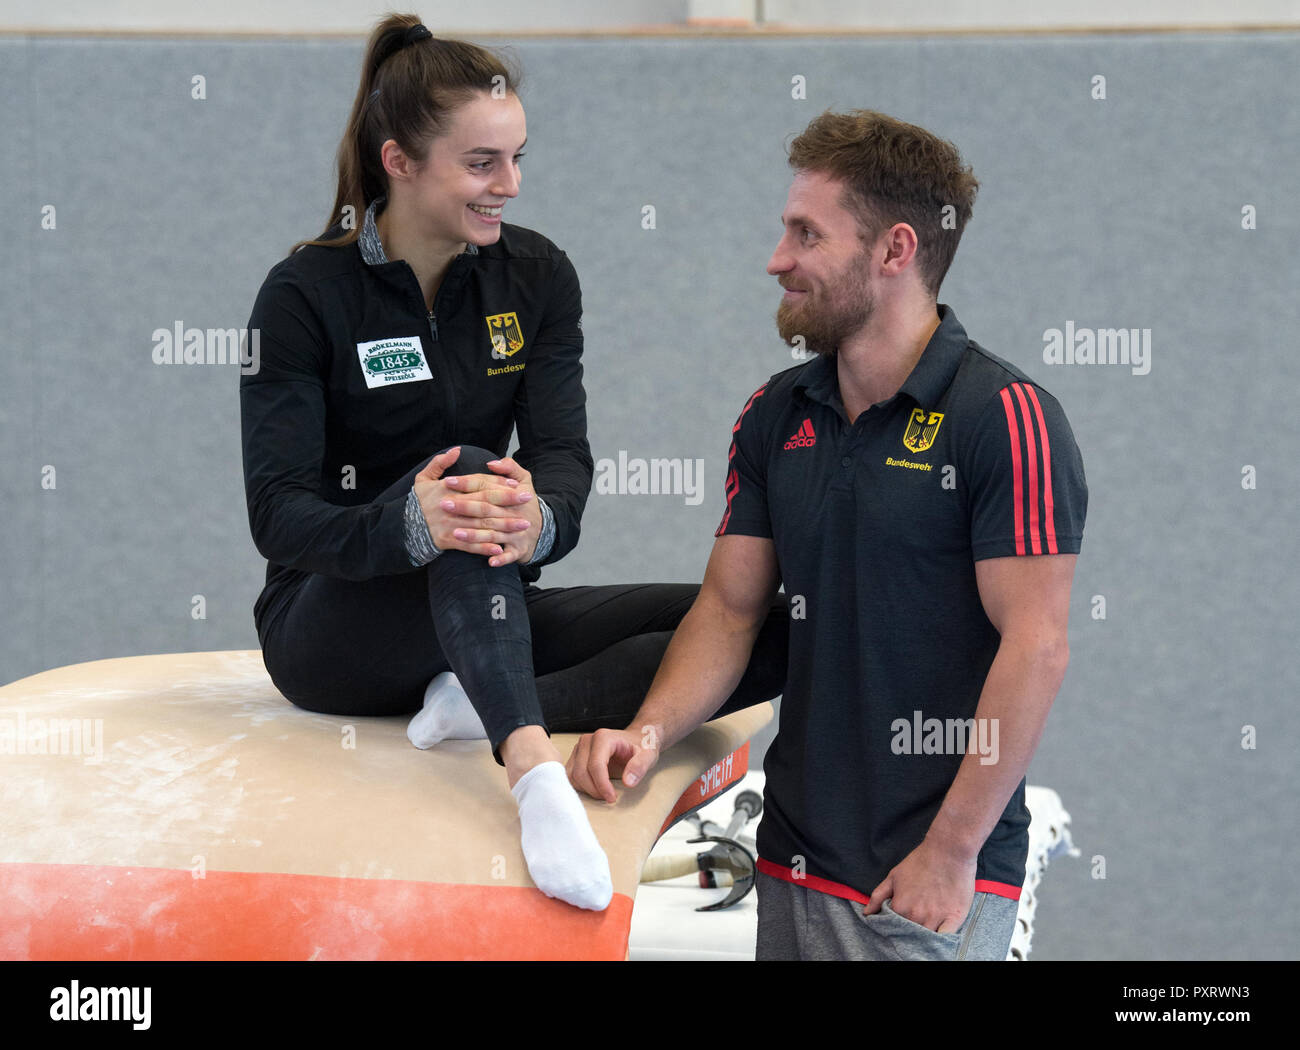 17 October 2018, Saxony, Chemnitz: Pauline Schäfer, World Champion at the balance beam and bar specialist Andreas Bretschneider in the gymnasium of the Sportforum Chemnitz. The top gymnasts from Chemnitz miss the World Championship in Doha due to injury. Schäfer is still suffering from an ankle injury. Bretschneider tore his Achilles tendon in his left foot at the German Championships in Leipzig. (to dpa-message: 'Sad pair of gymnasts: Shepherds and Bretschneider experience World Championships before TV' from 24.10.2018) Photo: Hendrik Schmidt/dpa-Zentralbild/dpa - Stock Image